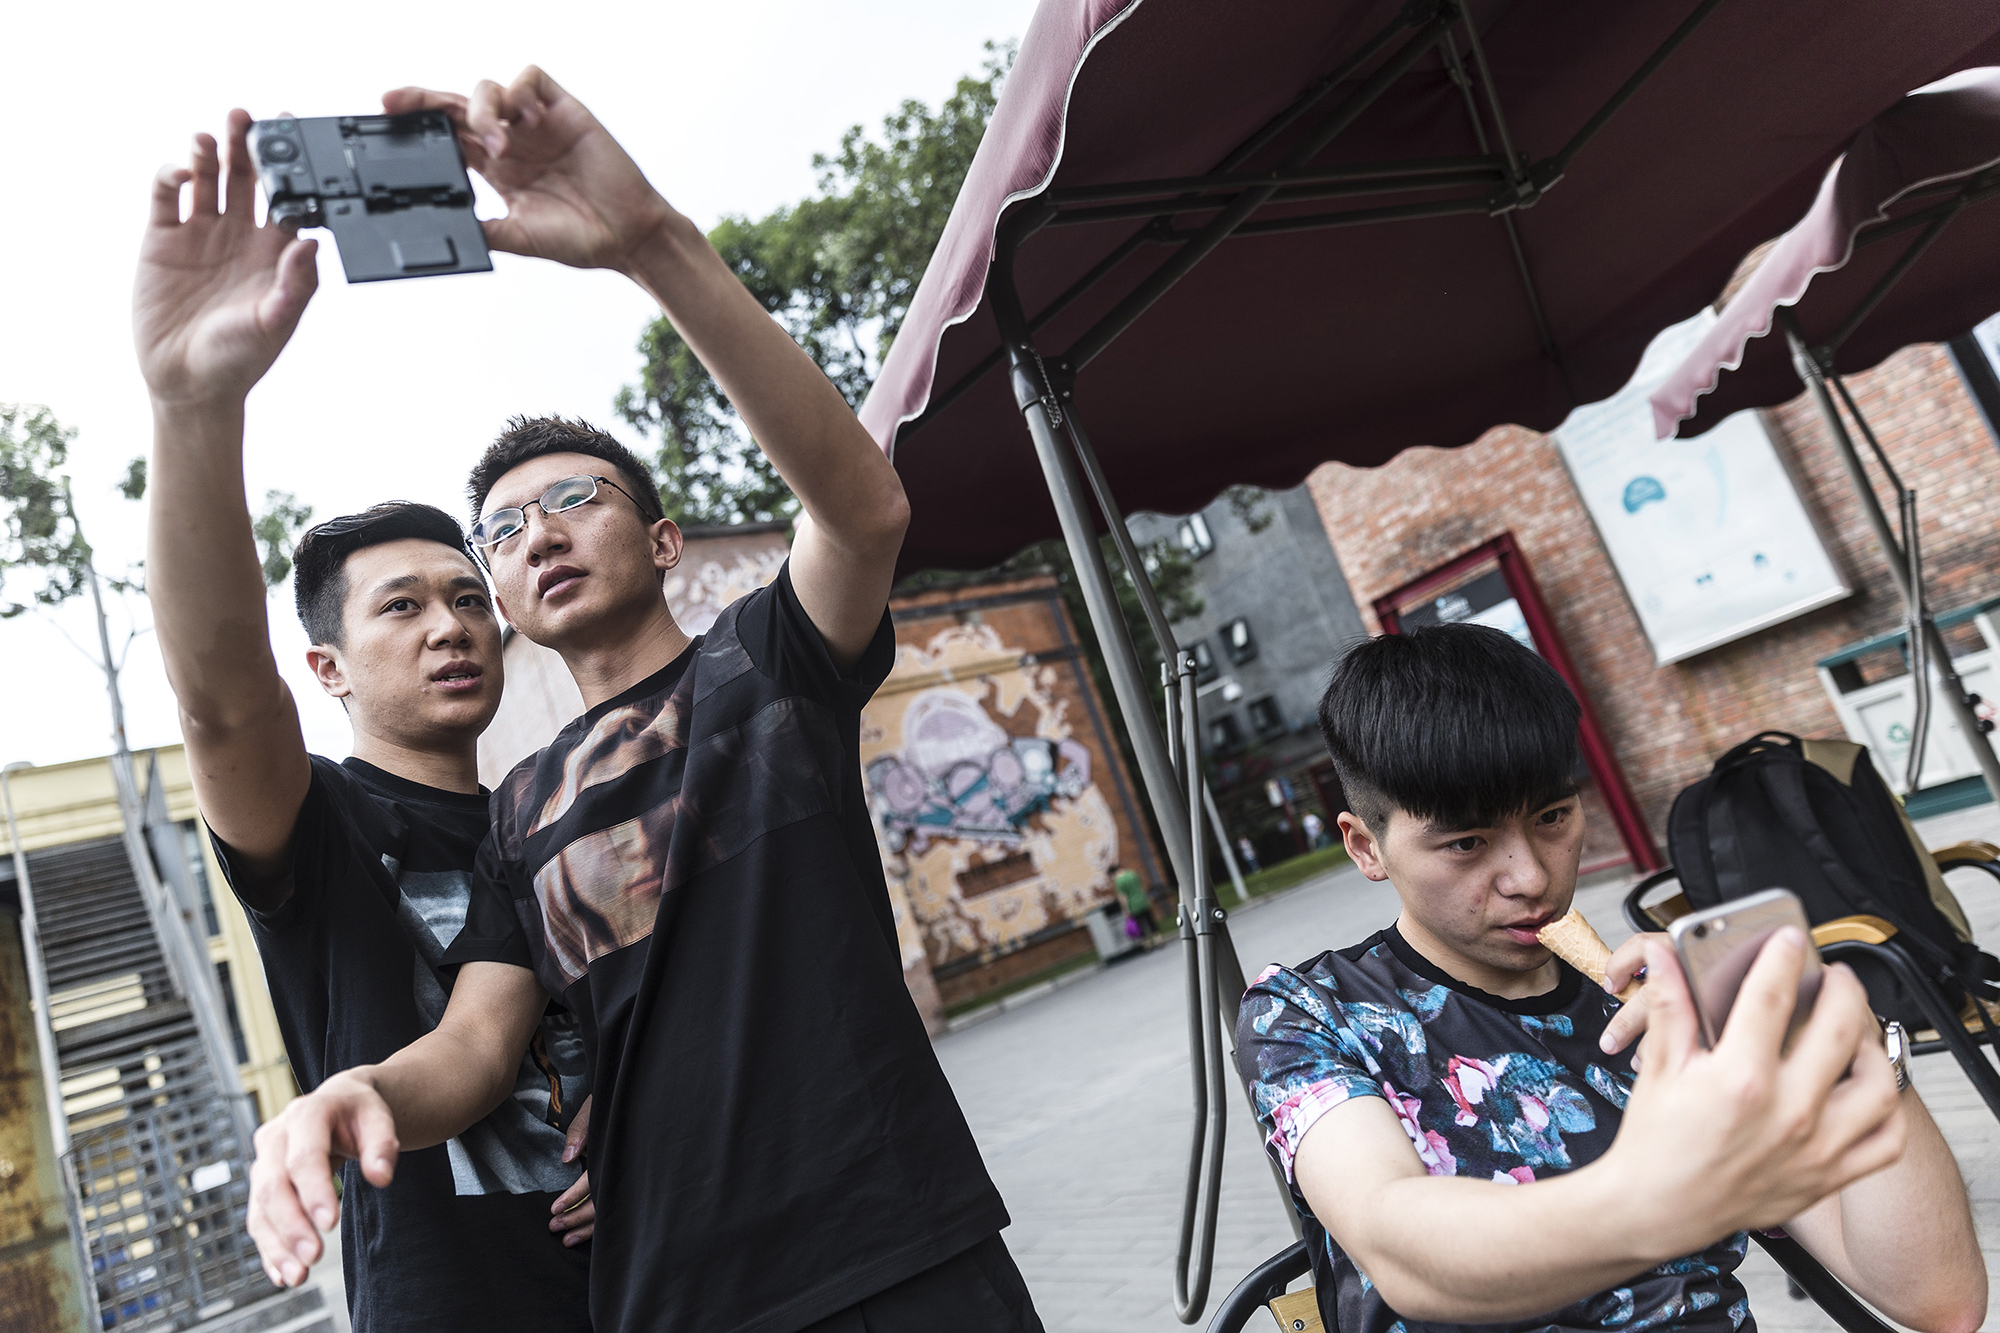 Brian shows a student how to take a better selfie at an art-themed park, May 16, 2015. According to the mentors, online profile photos should reflect a 'high-quality' lifestyle.